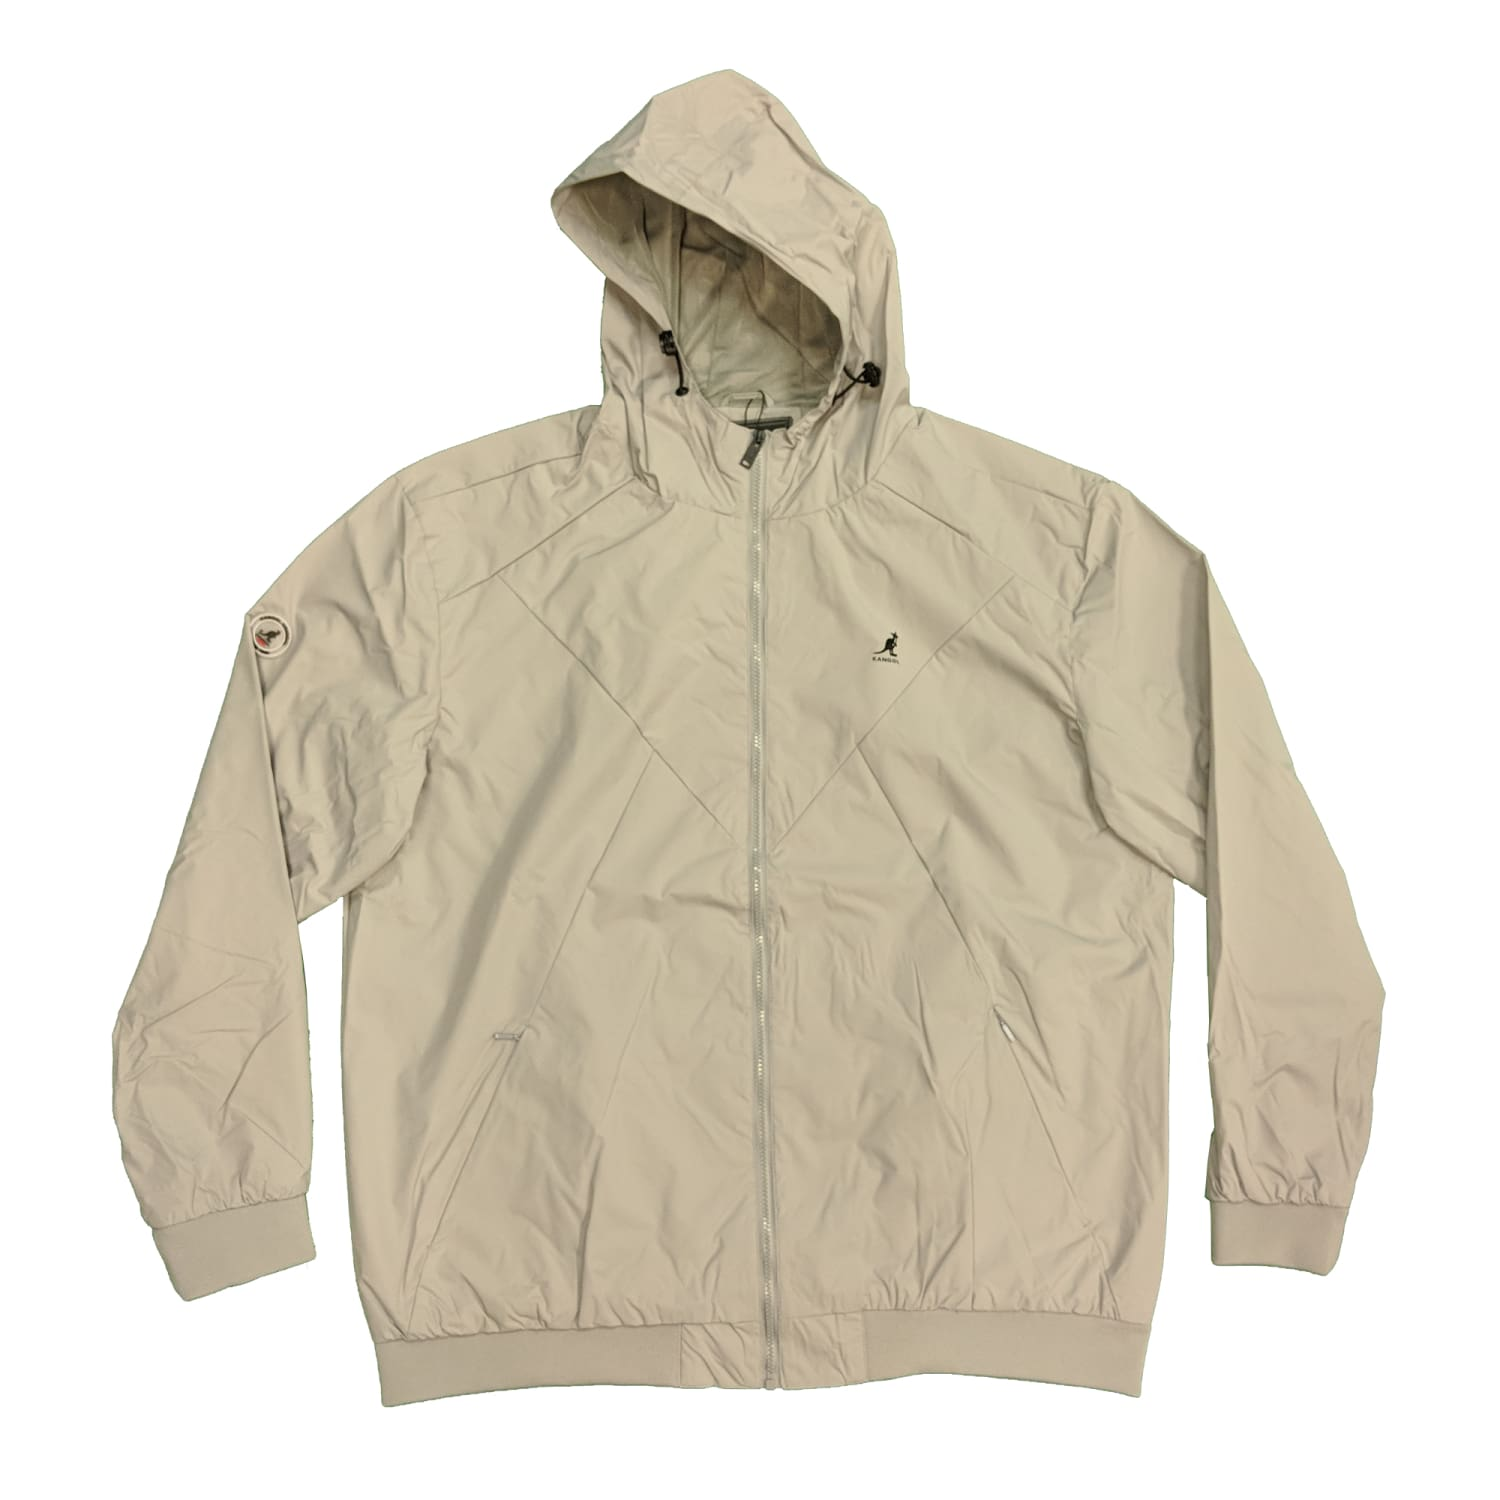 Kangol Jacket - K601498 - Hudson - Light Grey 1